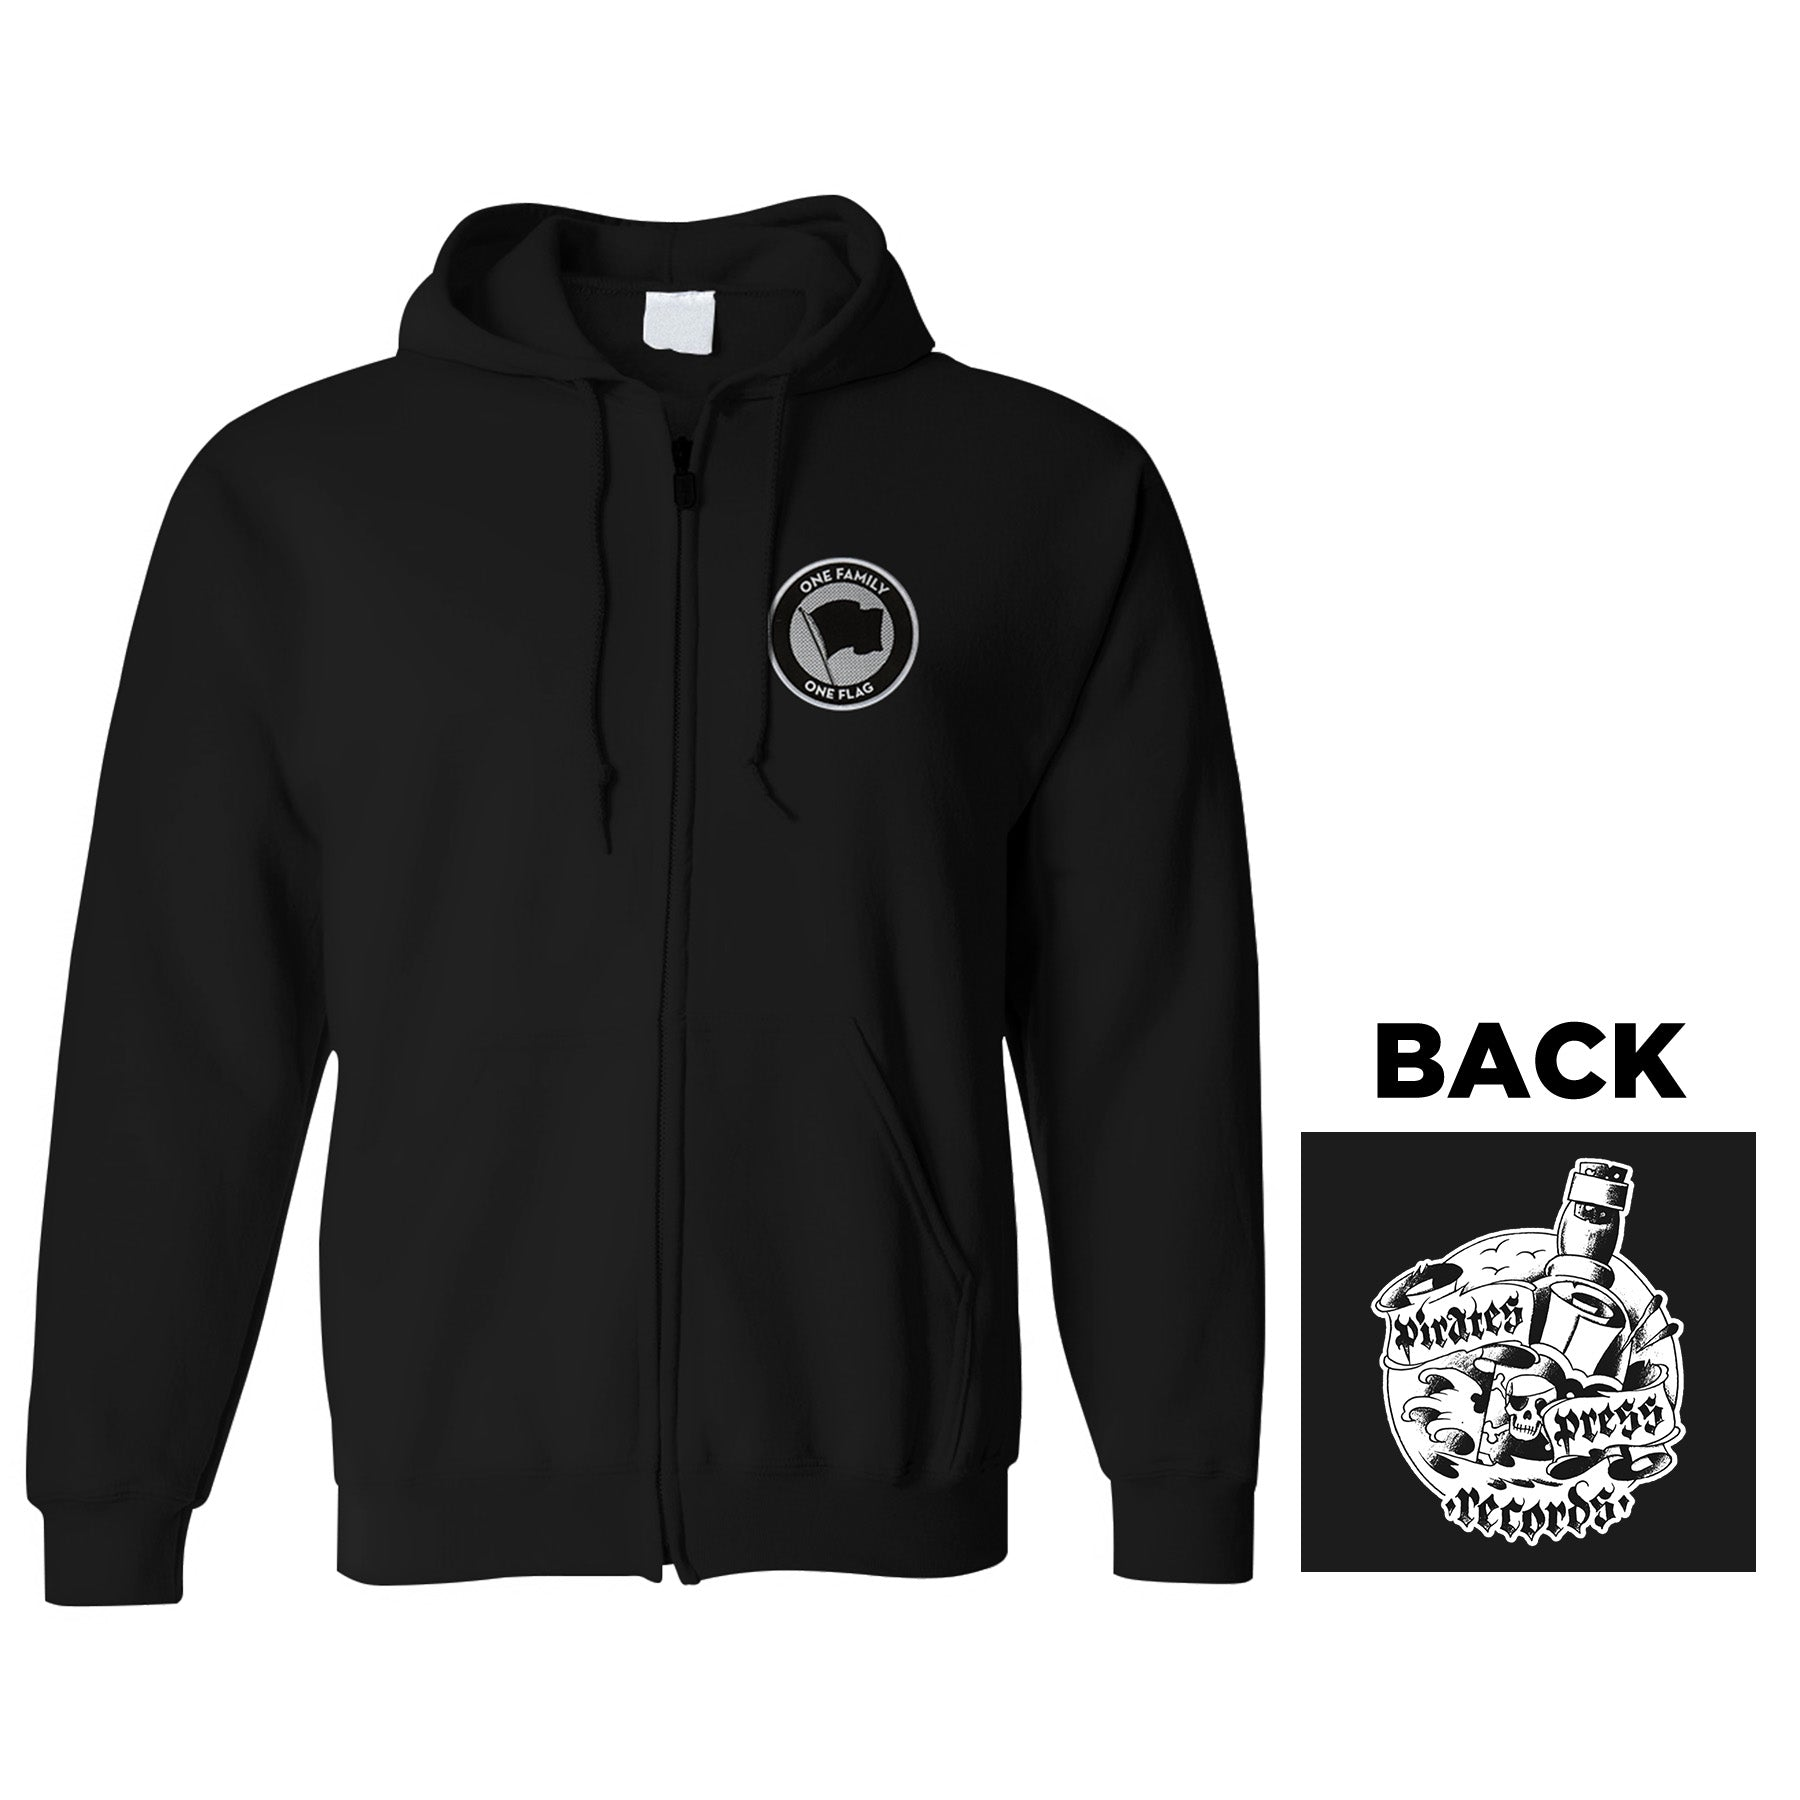 Pirates Press Records - Bottle - Patch - Black - Zip-Up Hoodie